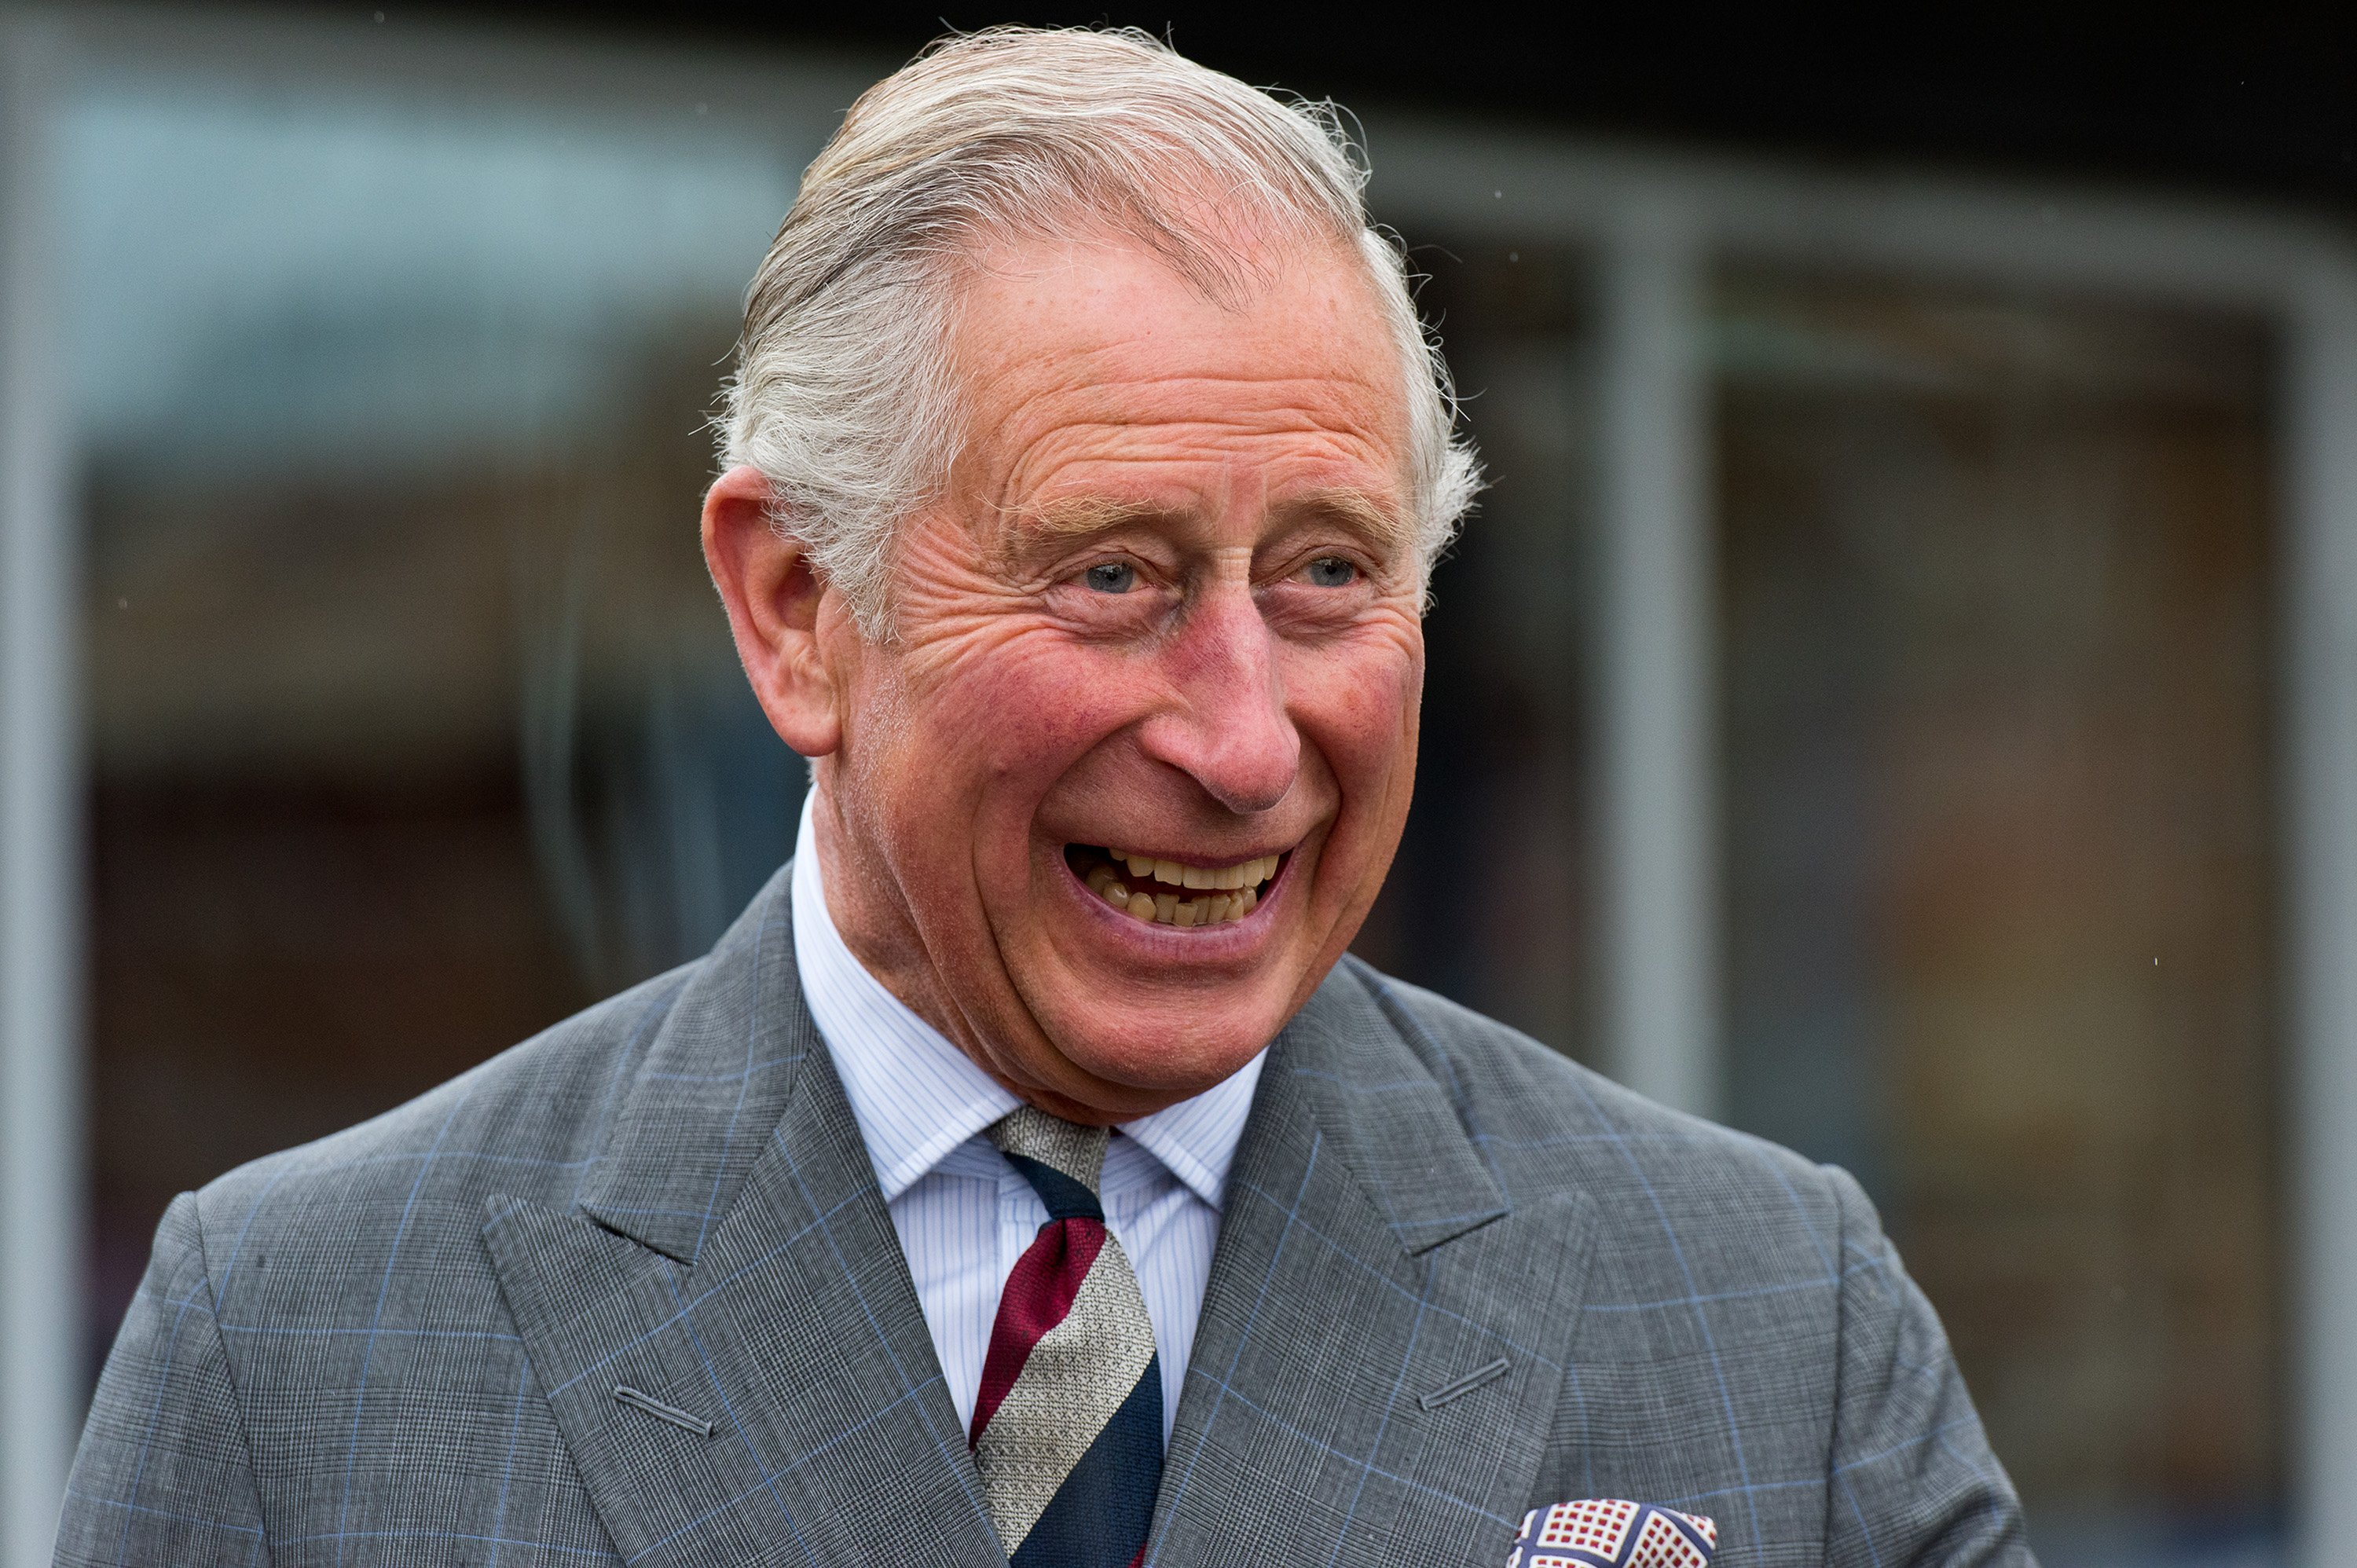 Prince Charles, Prince of Wales meets residents of The Guinness Partnership's 250th affordable home in Poundbury on May 8, 2015 in Dorchester, Dorset | Photo: Getty Images